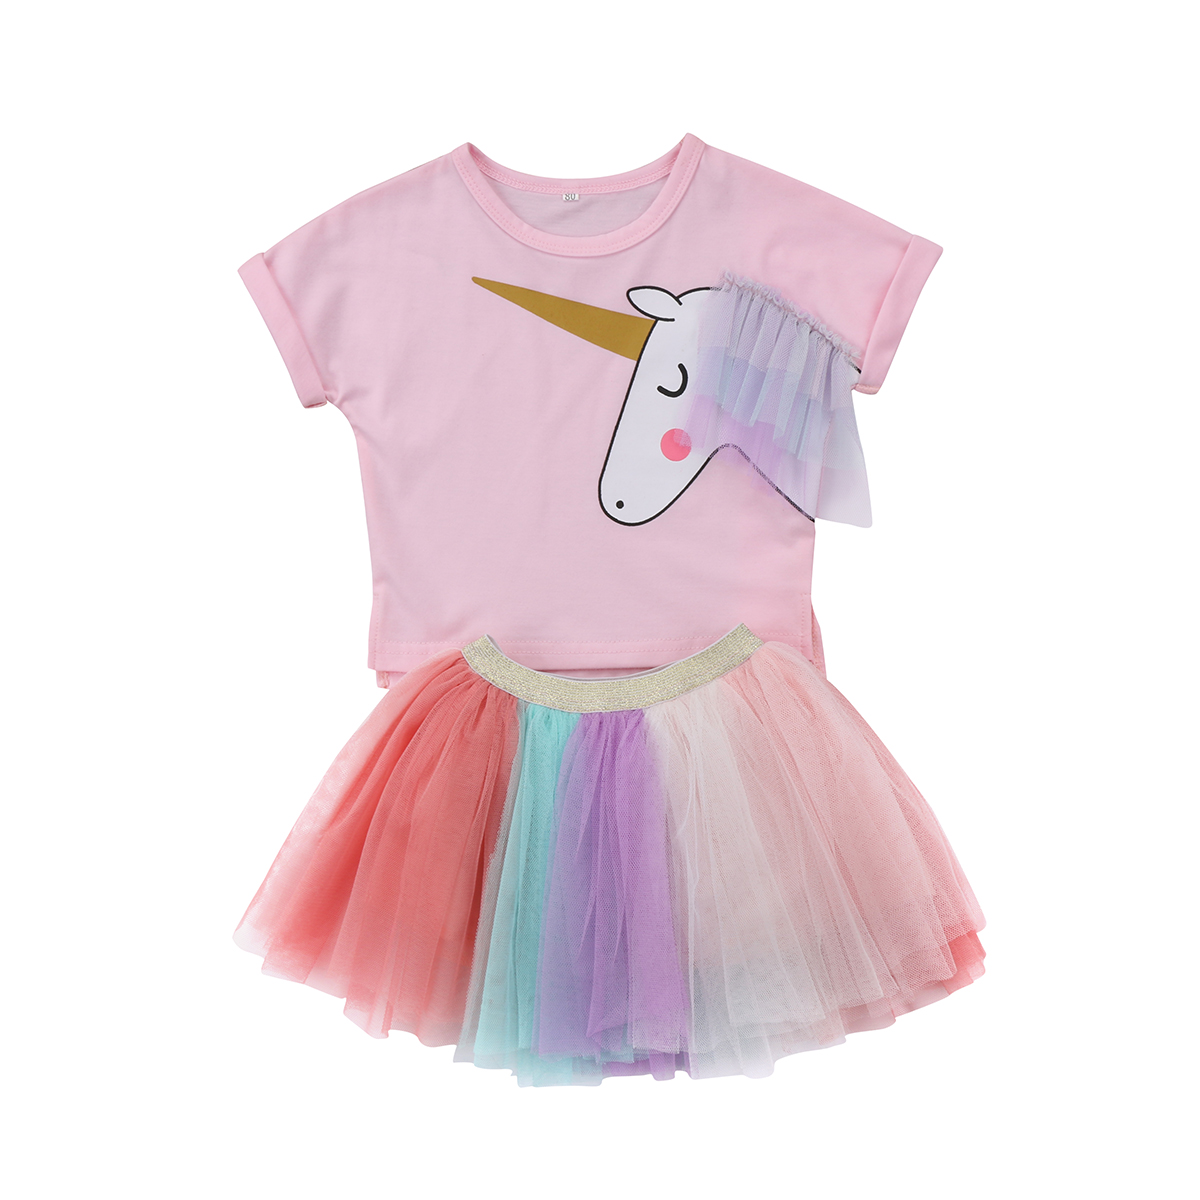 Capretti Neonate Stampati T-Shirt Top + Lace Skirt Tutu Outfit Set Abbigliamento Estate